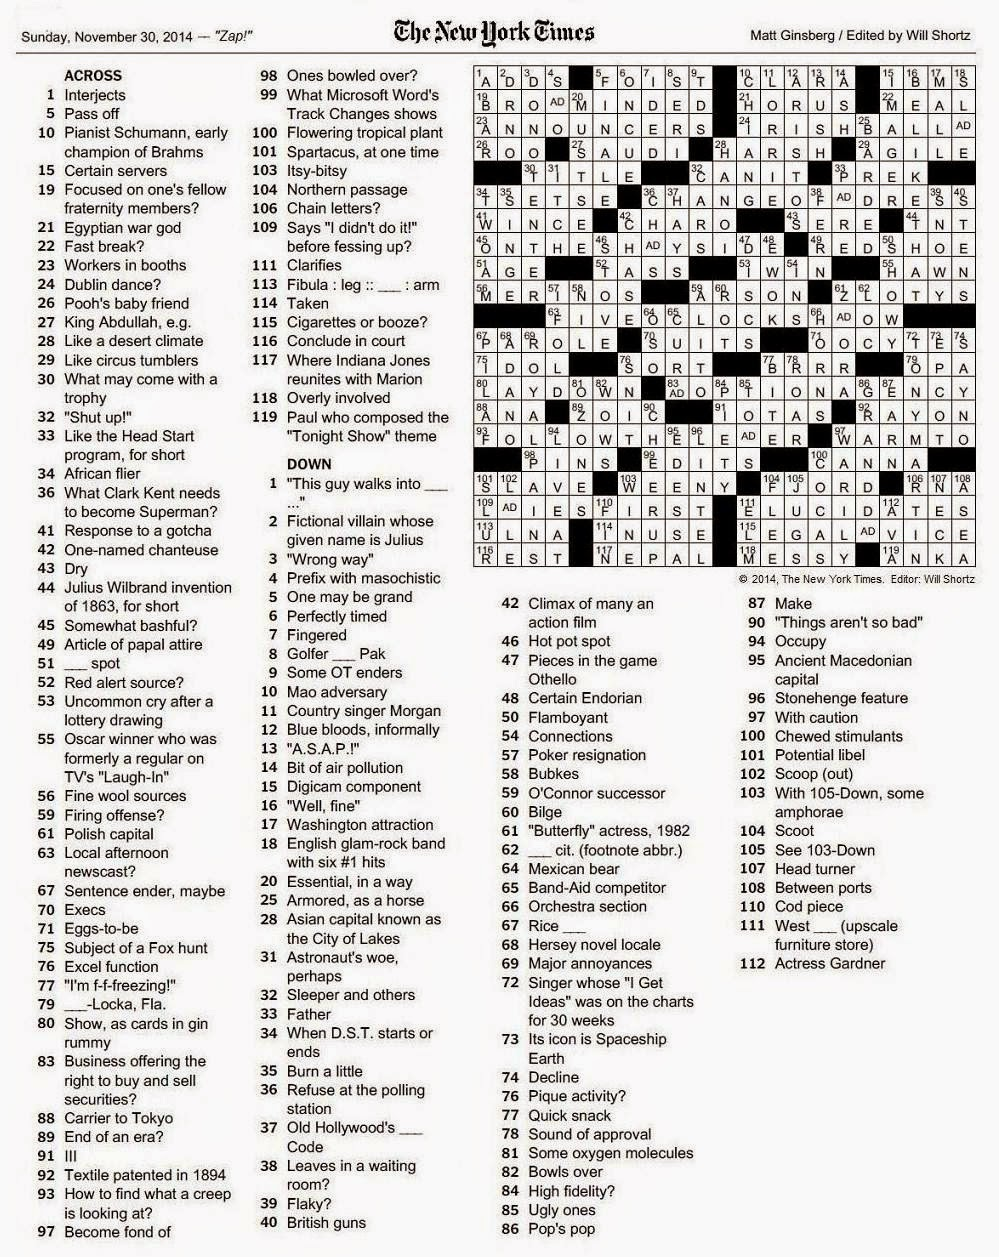 Buy research paper urgently crossword clue